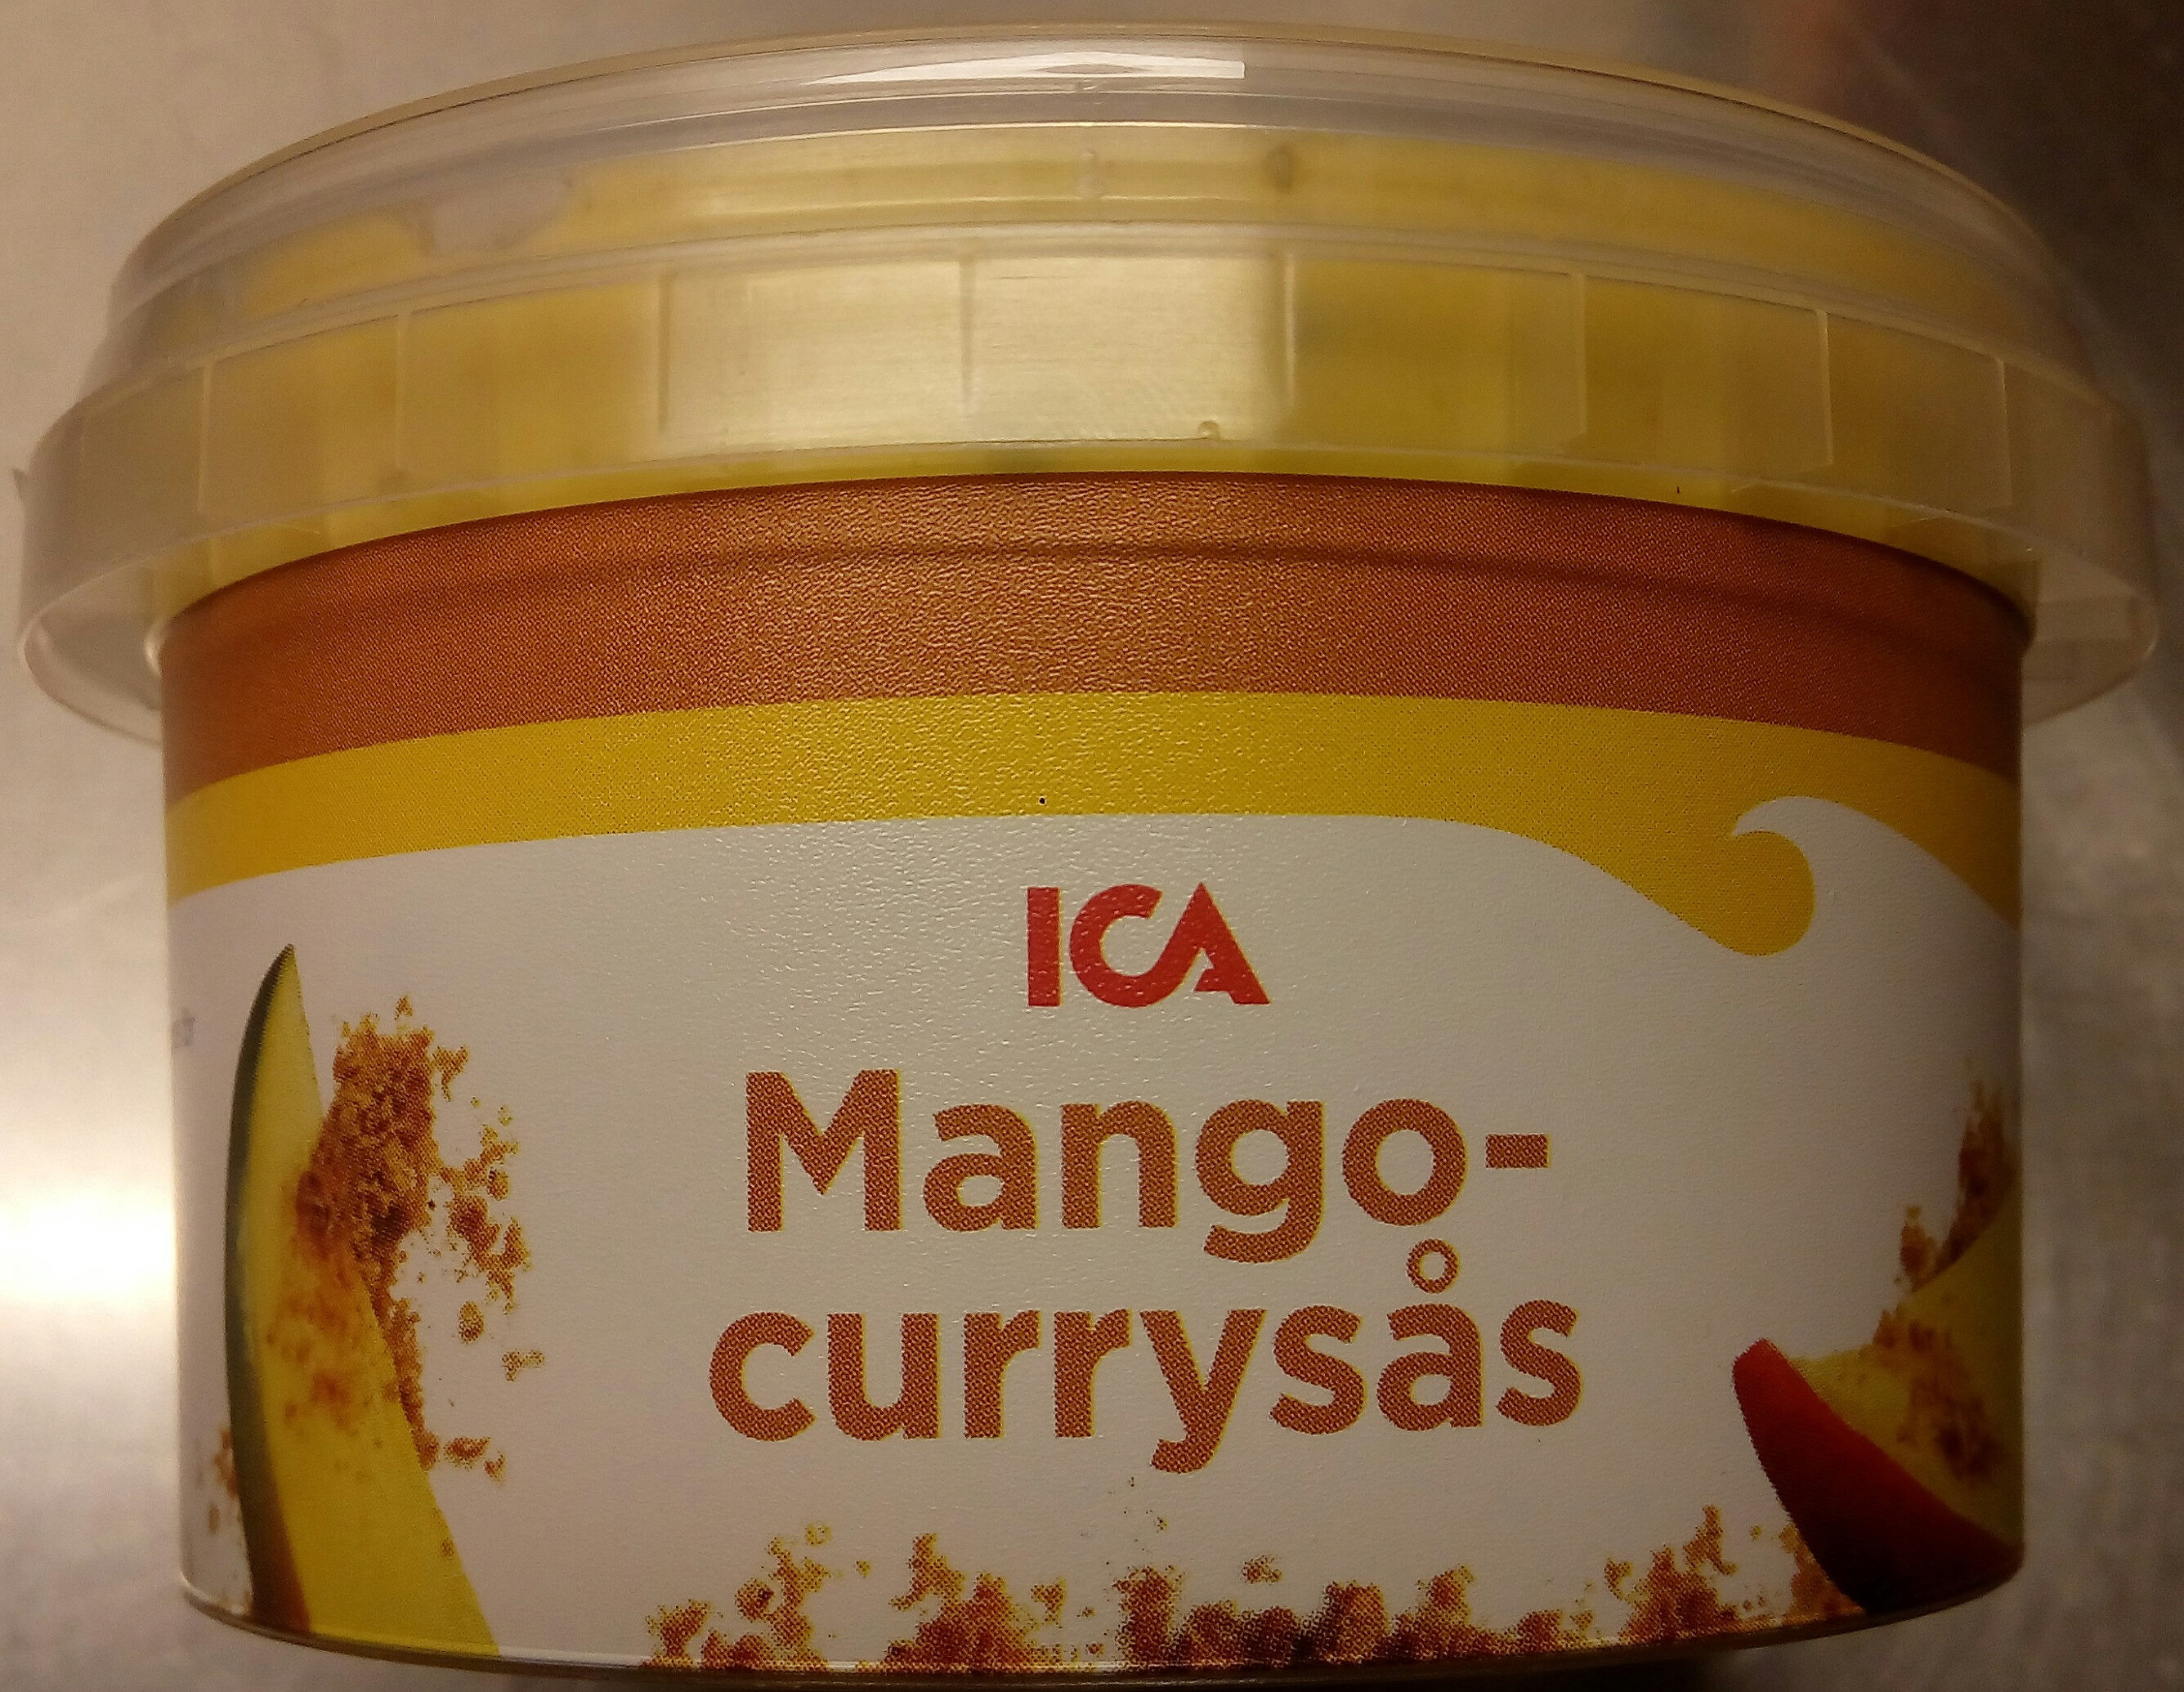 ICA Mango-currysås - Product